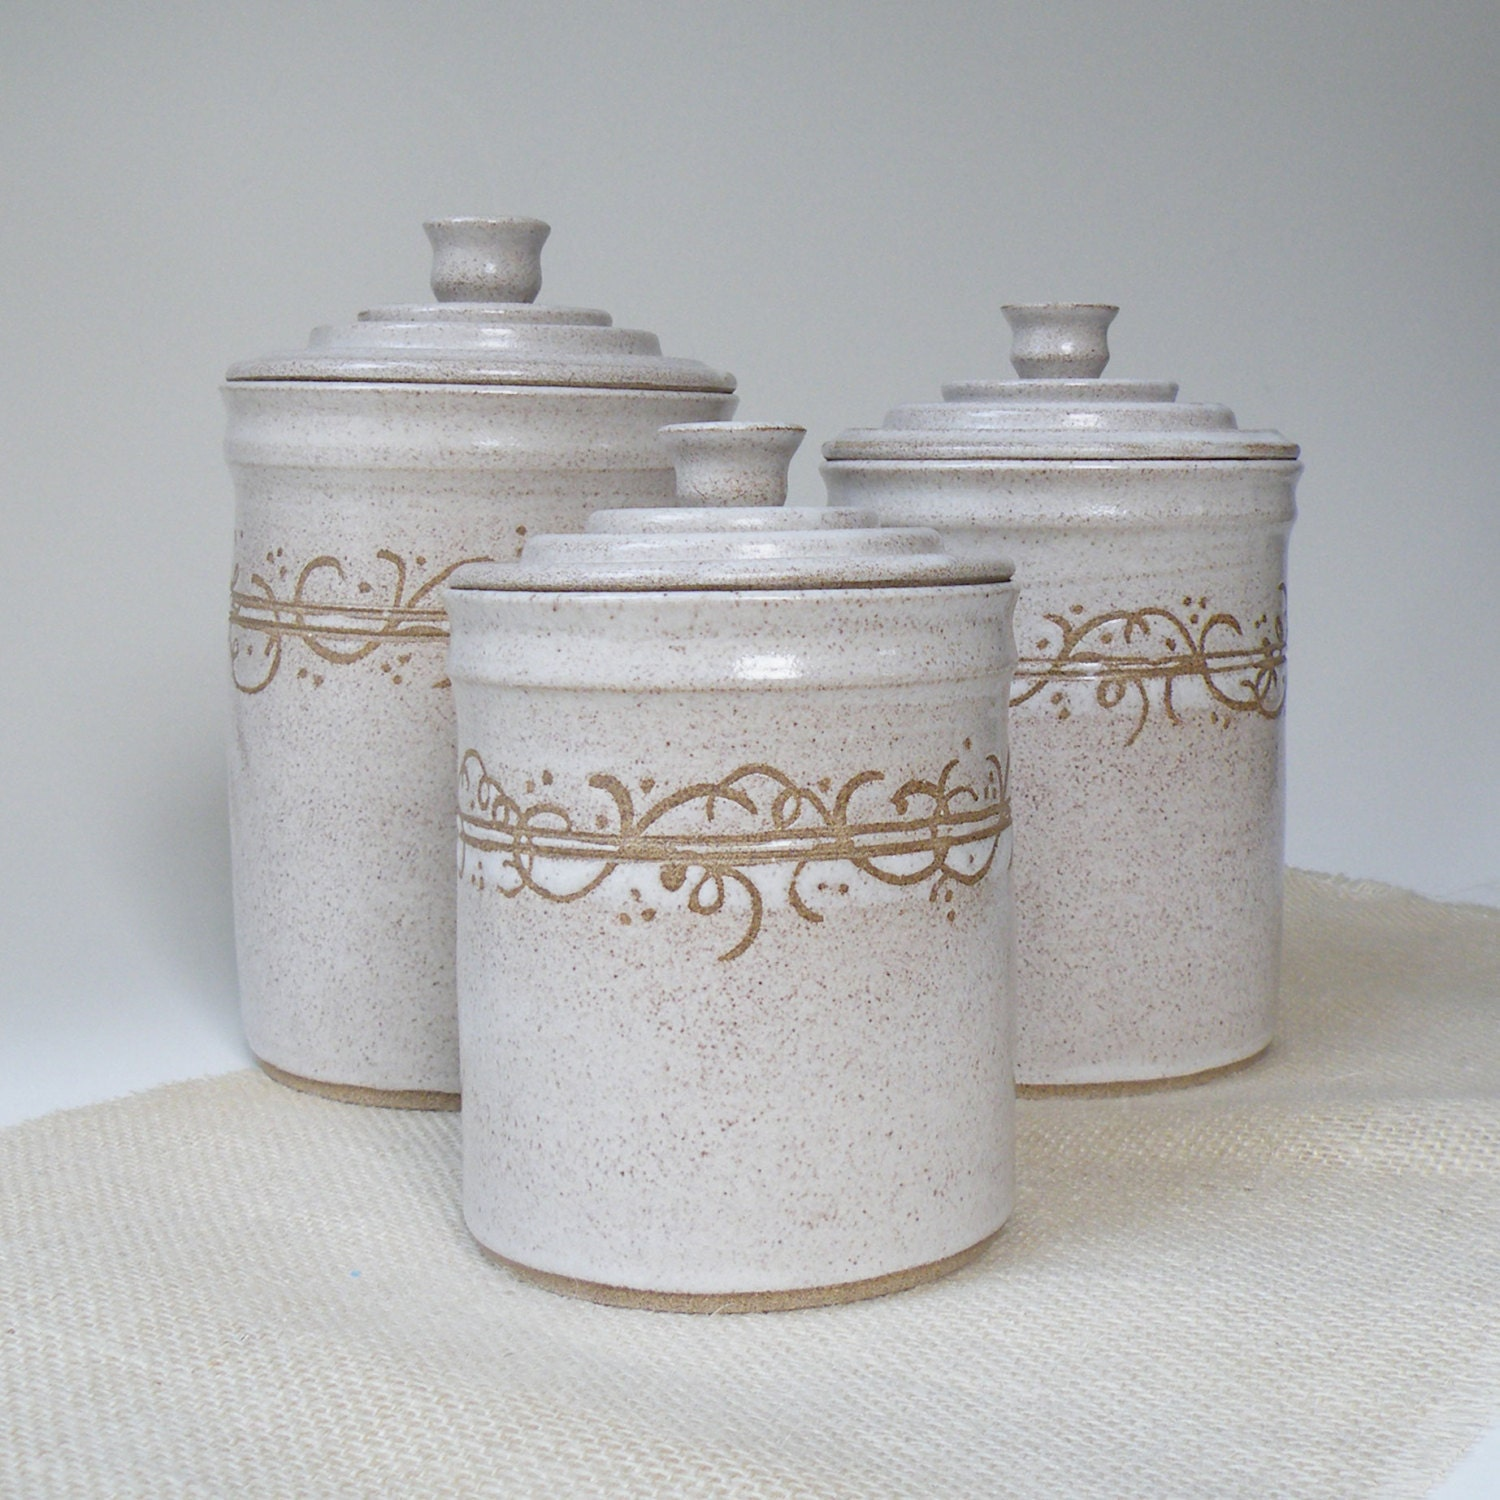 kitchen canisters ceramic sets kitchen collections talavera kitchen canisters collection talavera kitchen